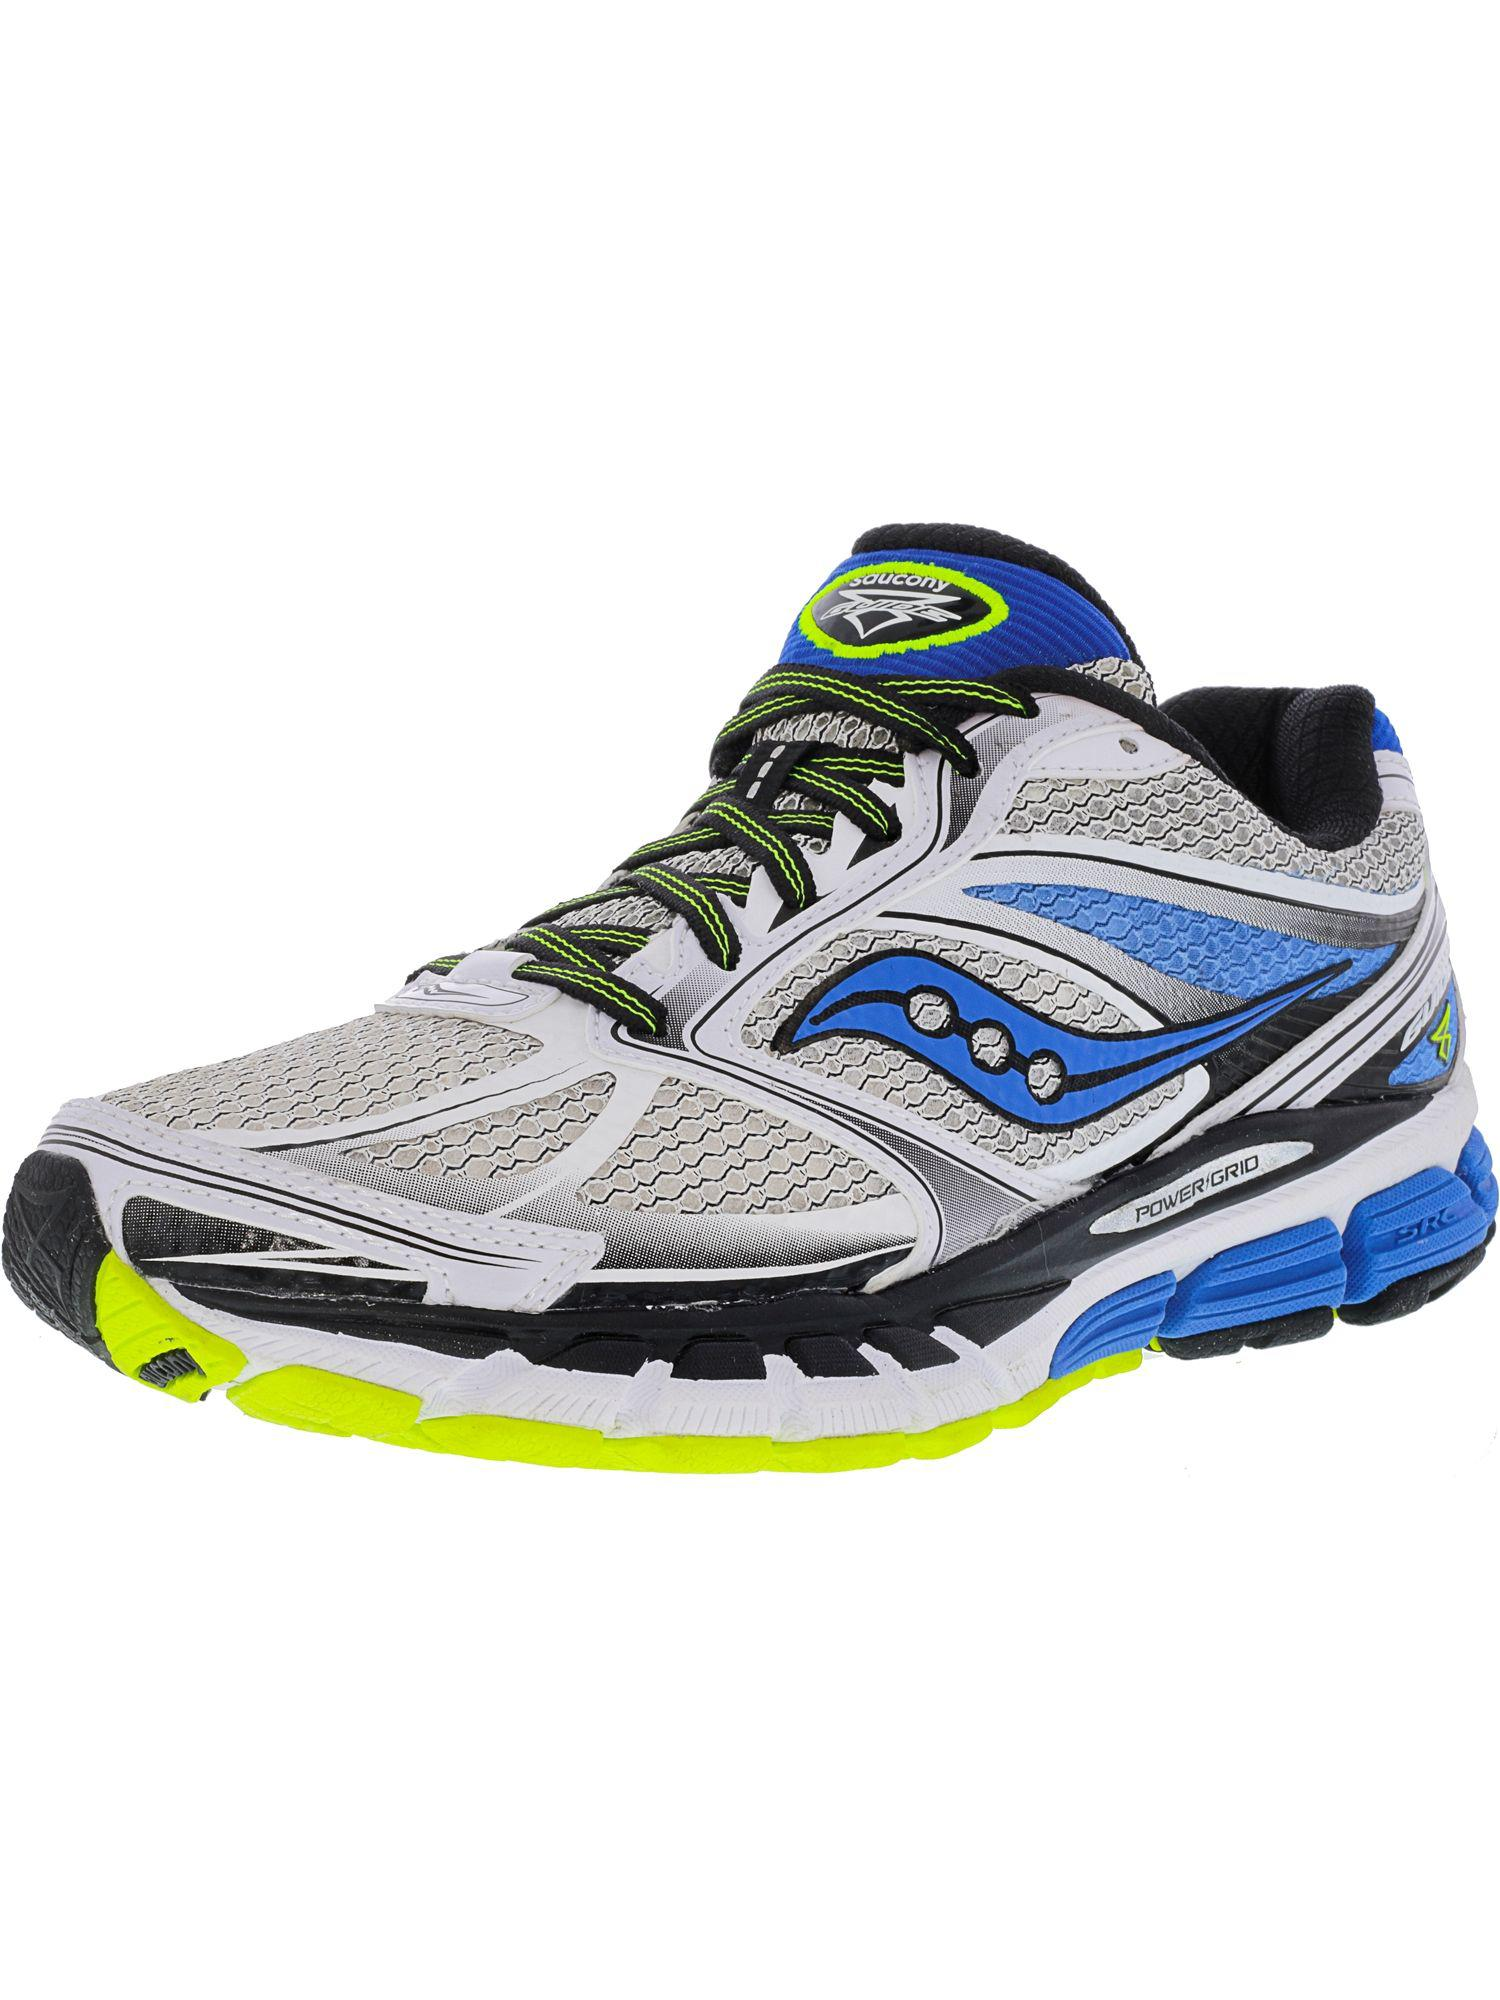 043ea6fc13ac Lyst - Saucony Men s Guide 8 Ankle-high Running Shoe in White for Men